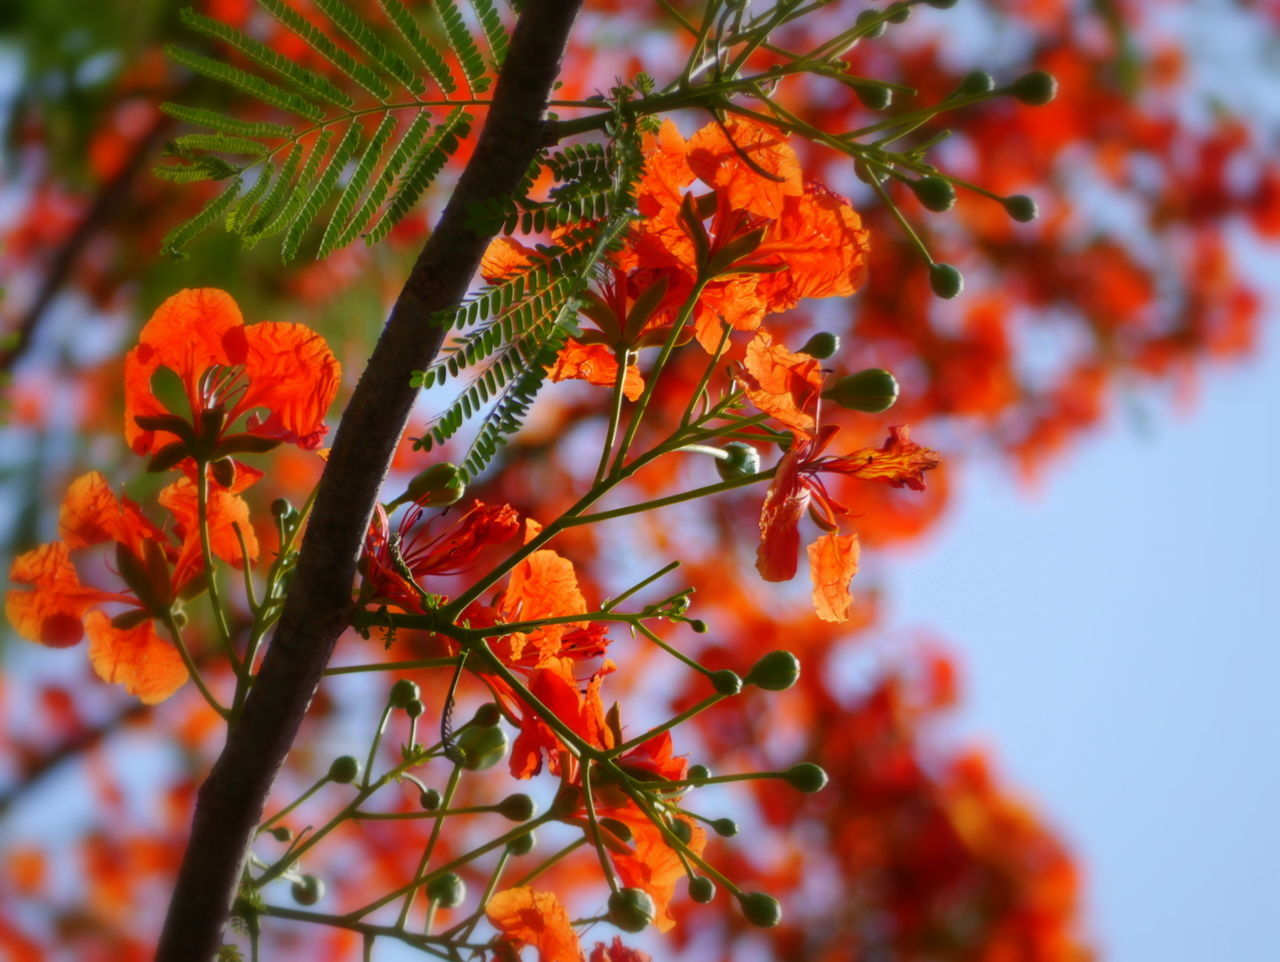 LOW ANGLE VIEW OF LEAVES ON TREE